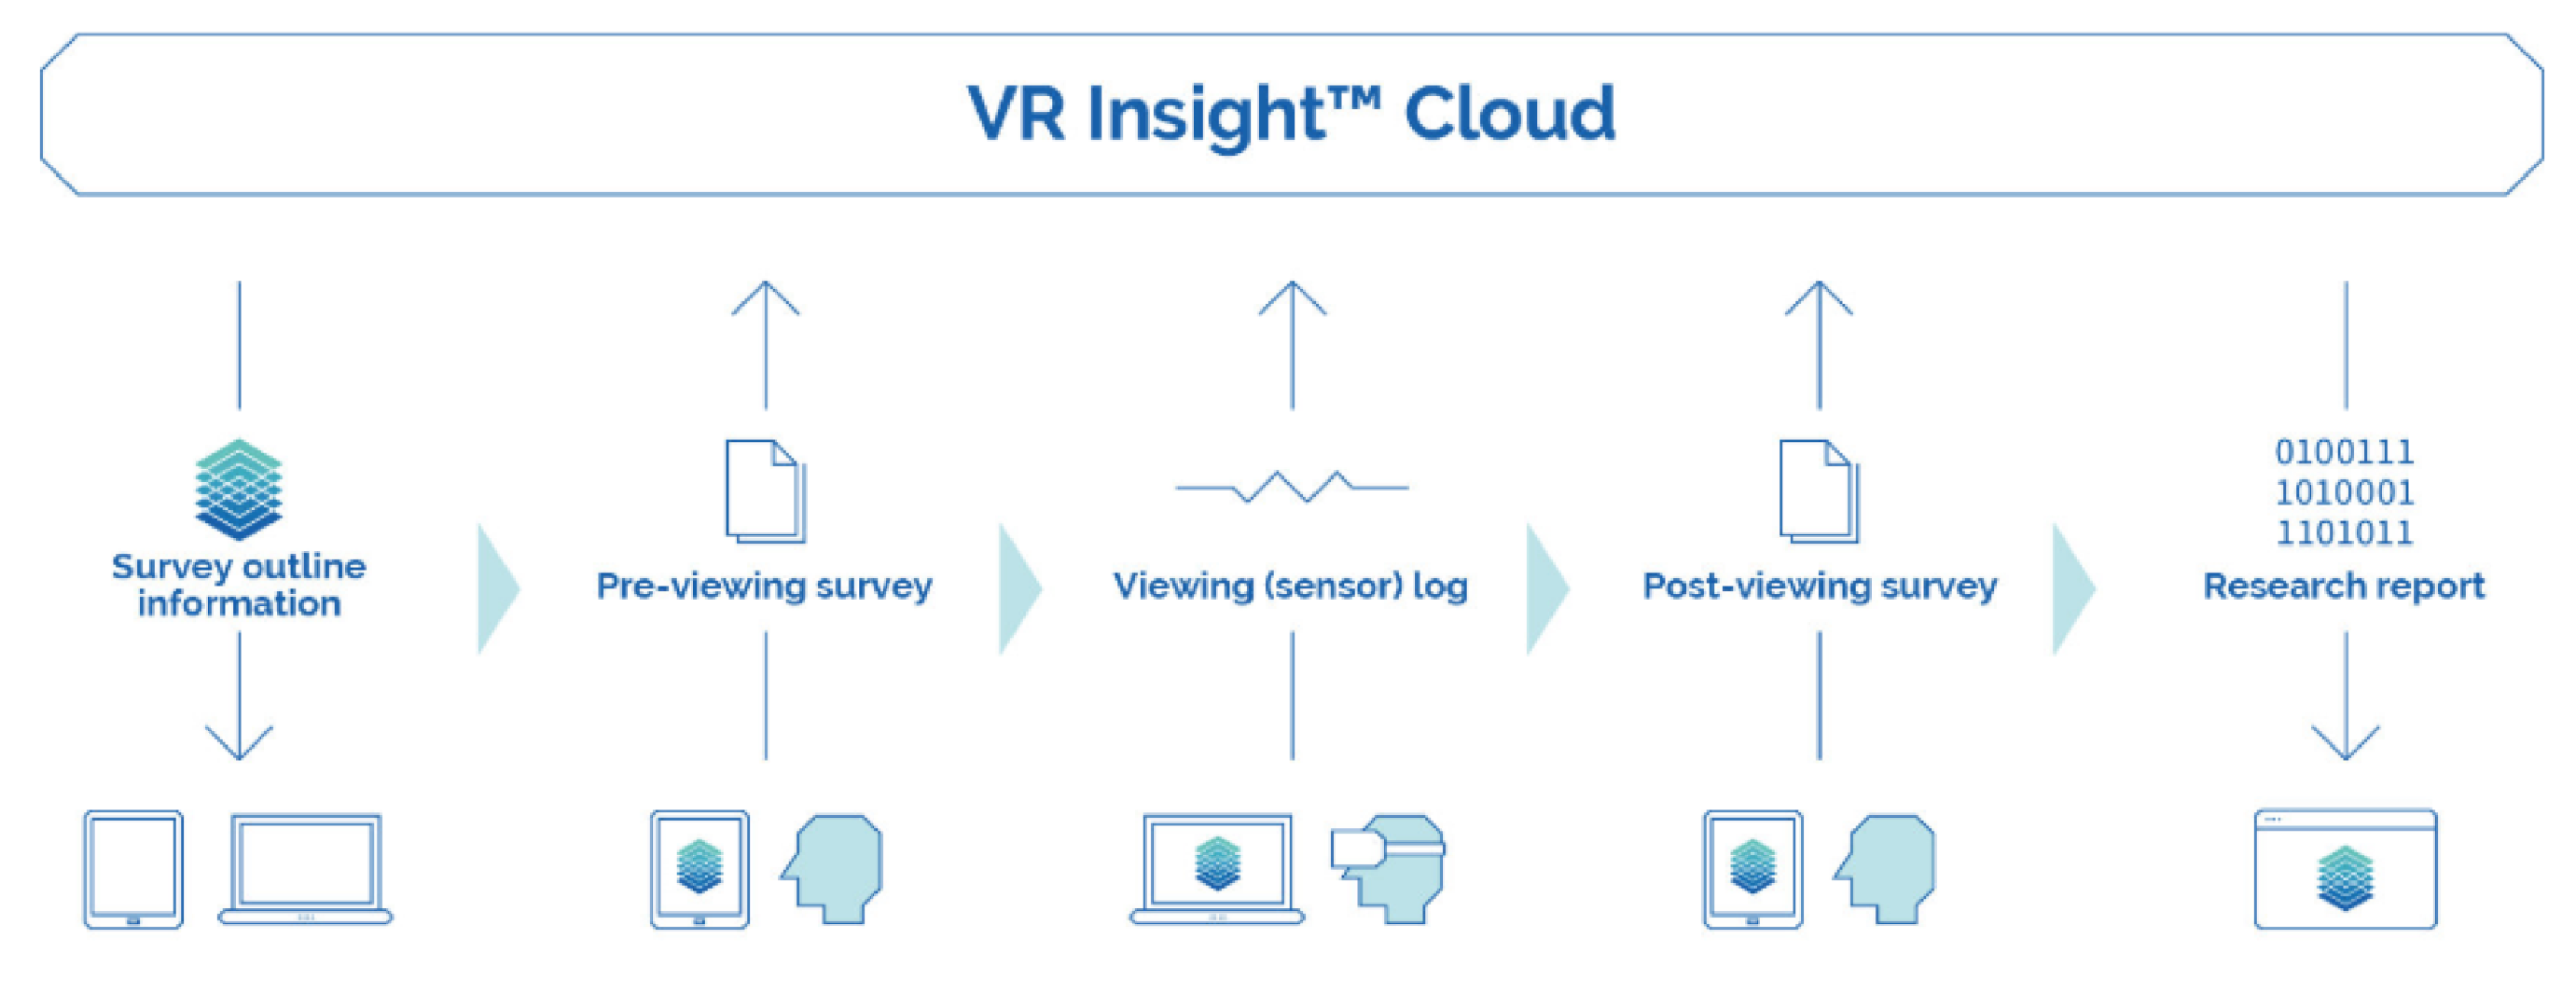 VR Insight Cloud Diagram